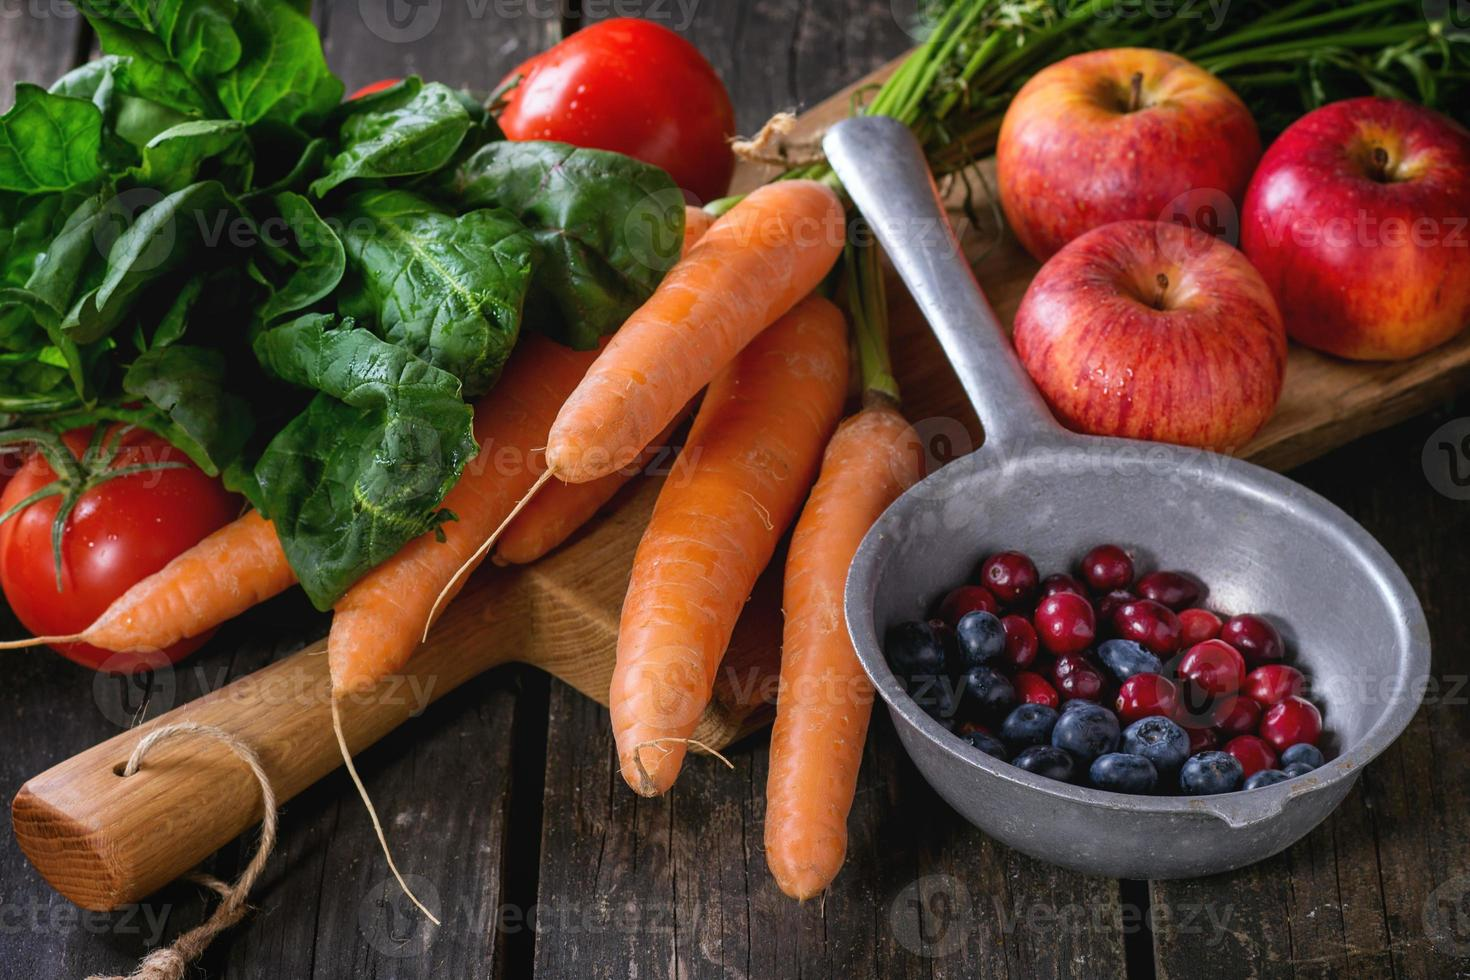 Mix of fruits, vegetables and berries photo